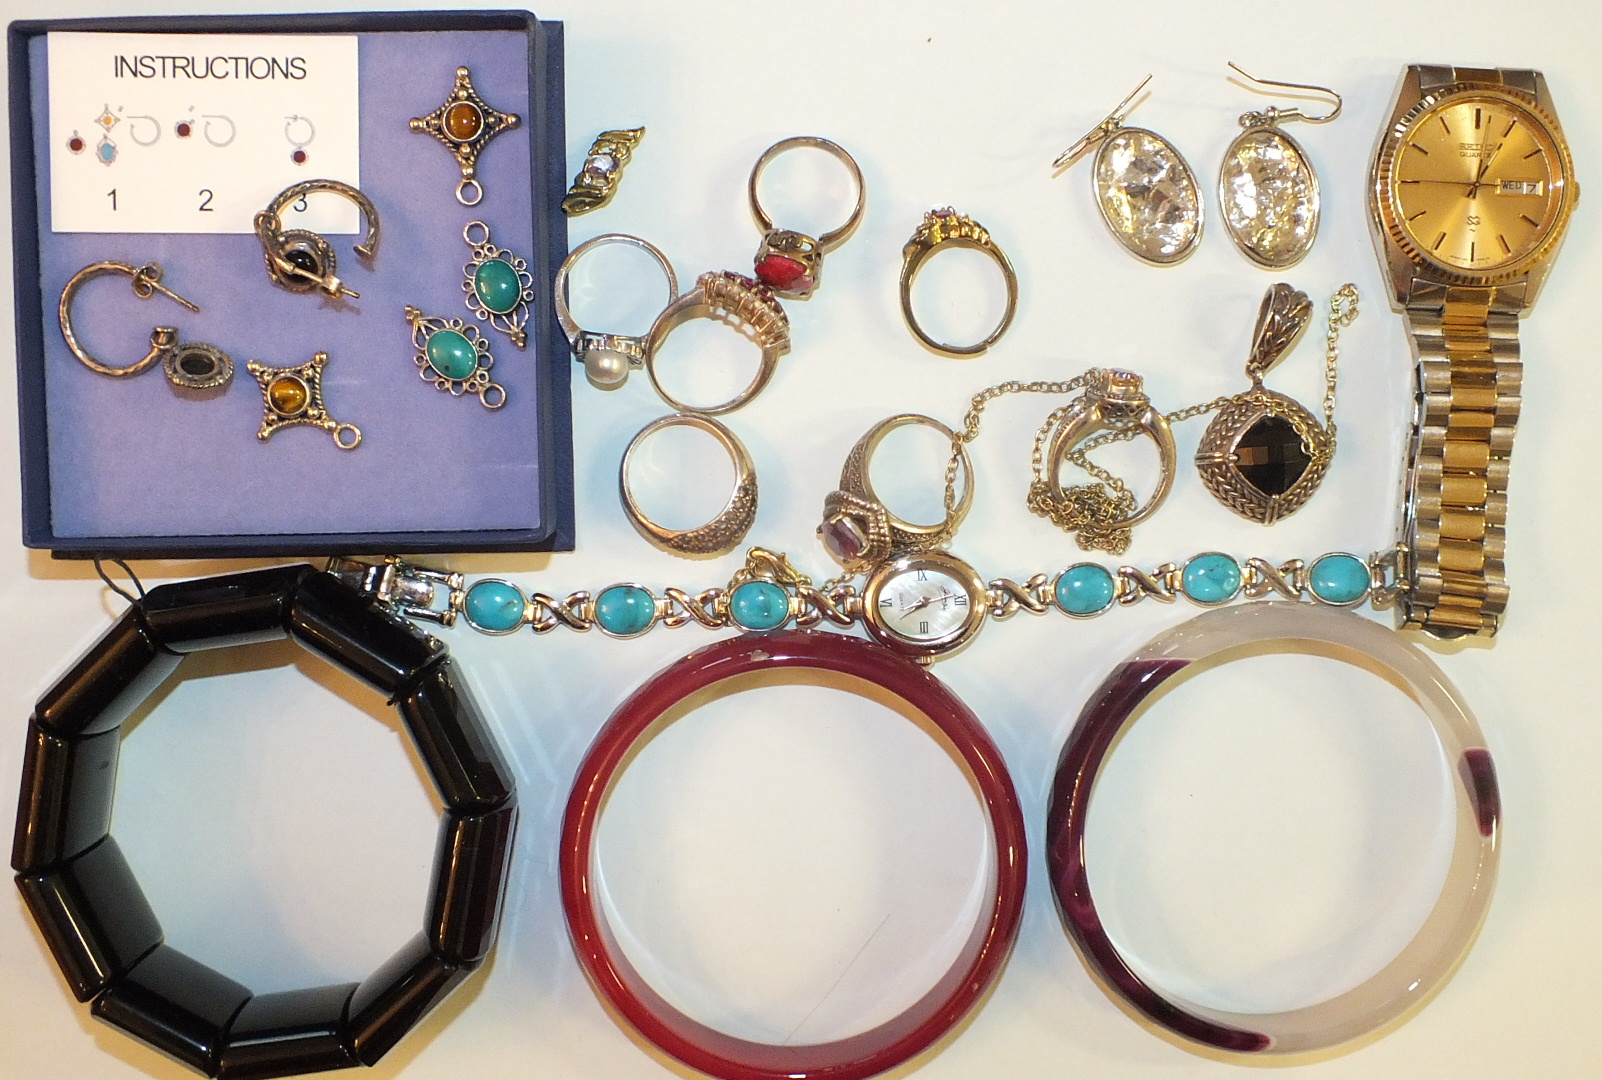 Lot 265 - A purple and white banded agate bangle, a pink hardstone bangle, a bracelet of onyx plaques, a